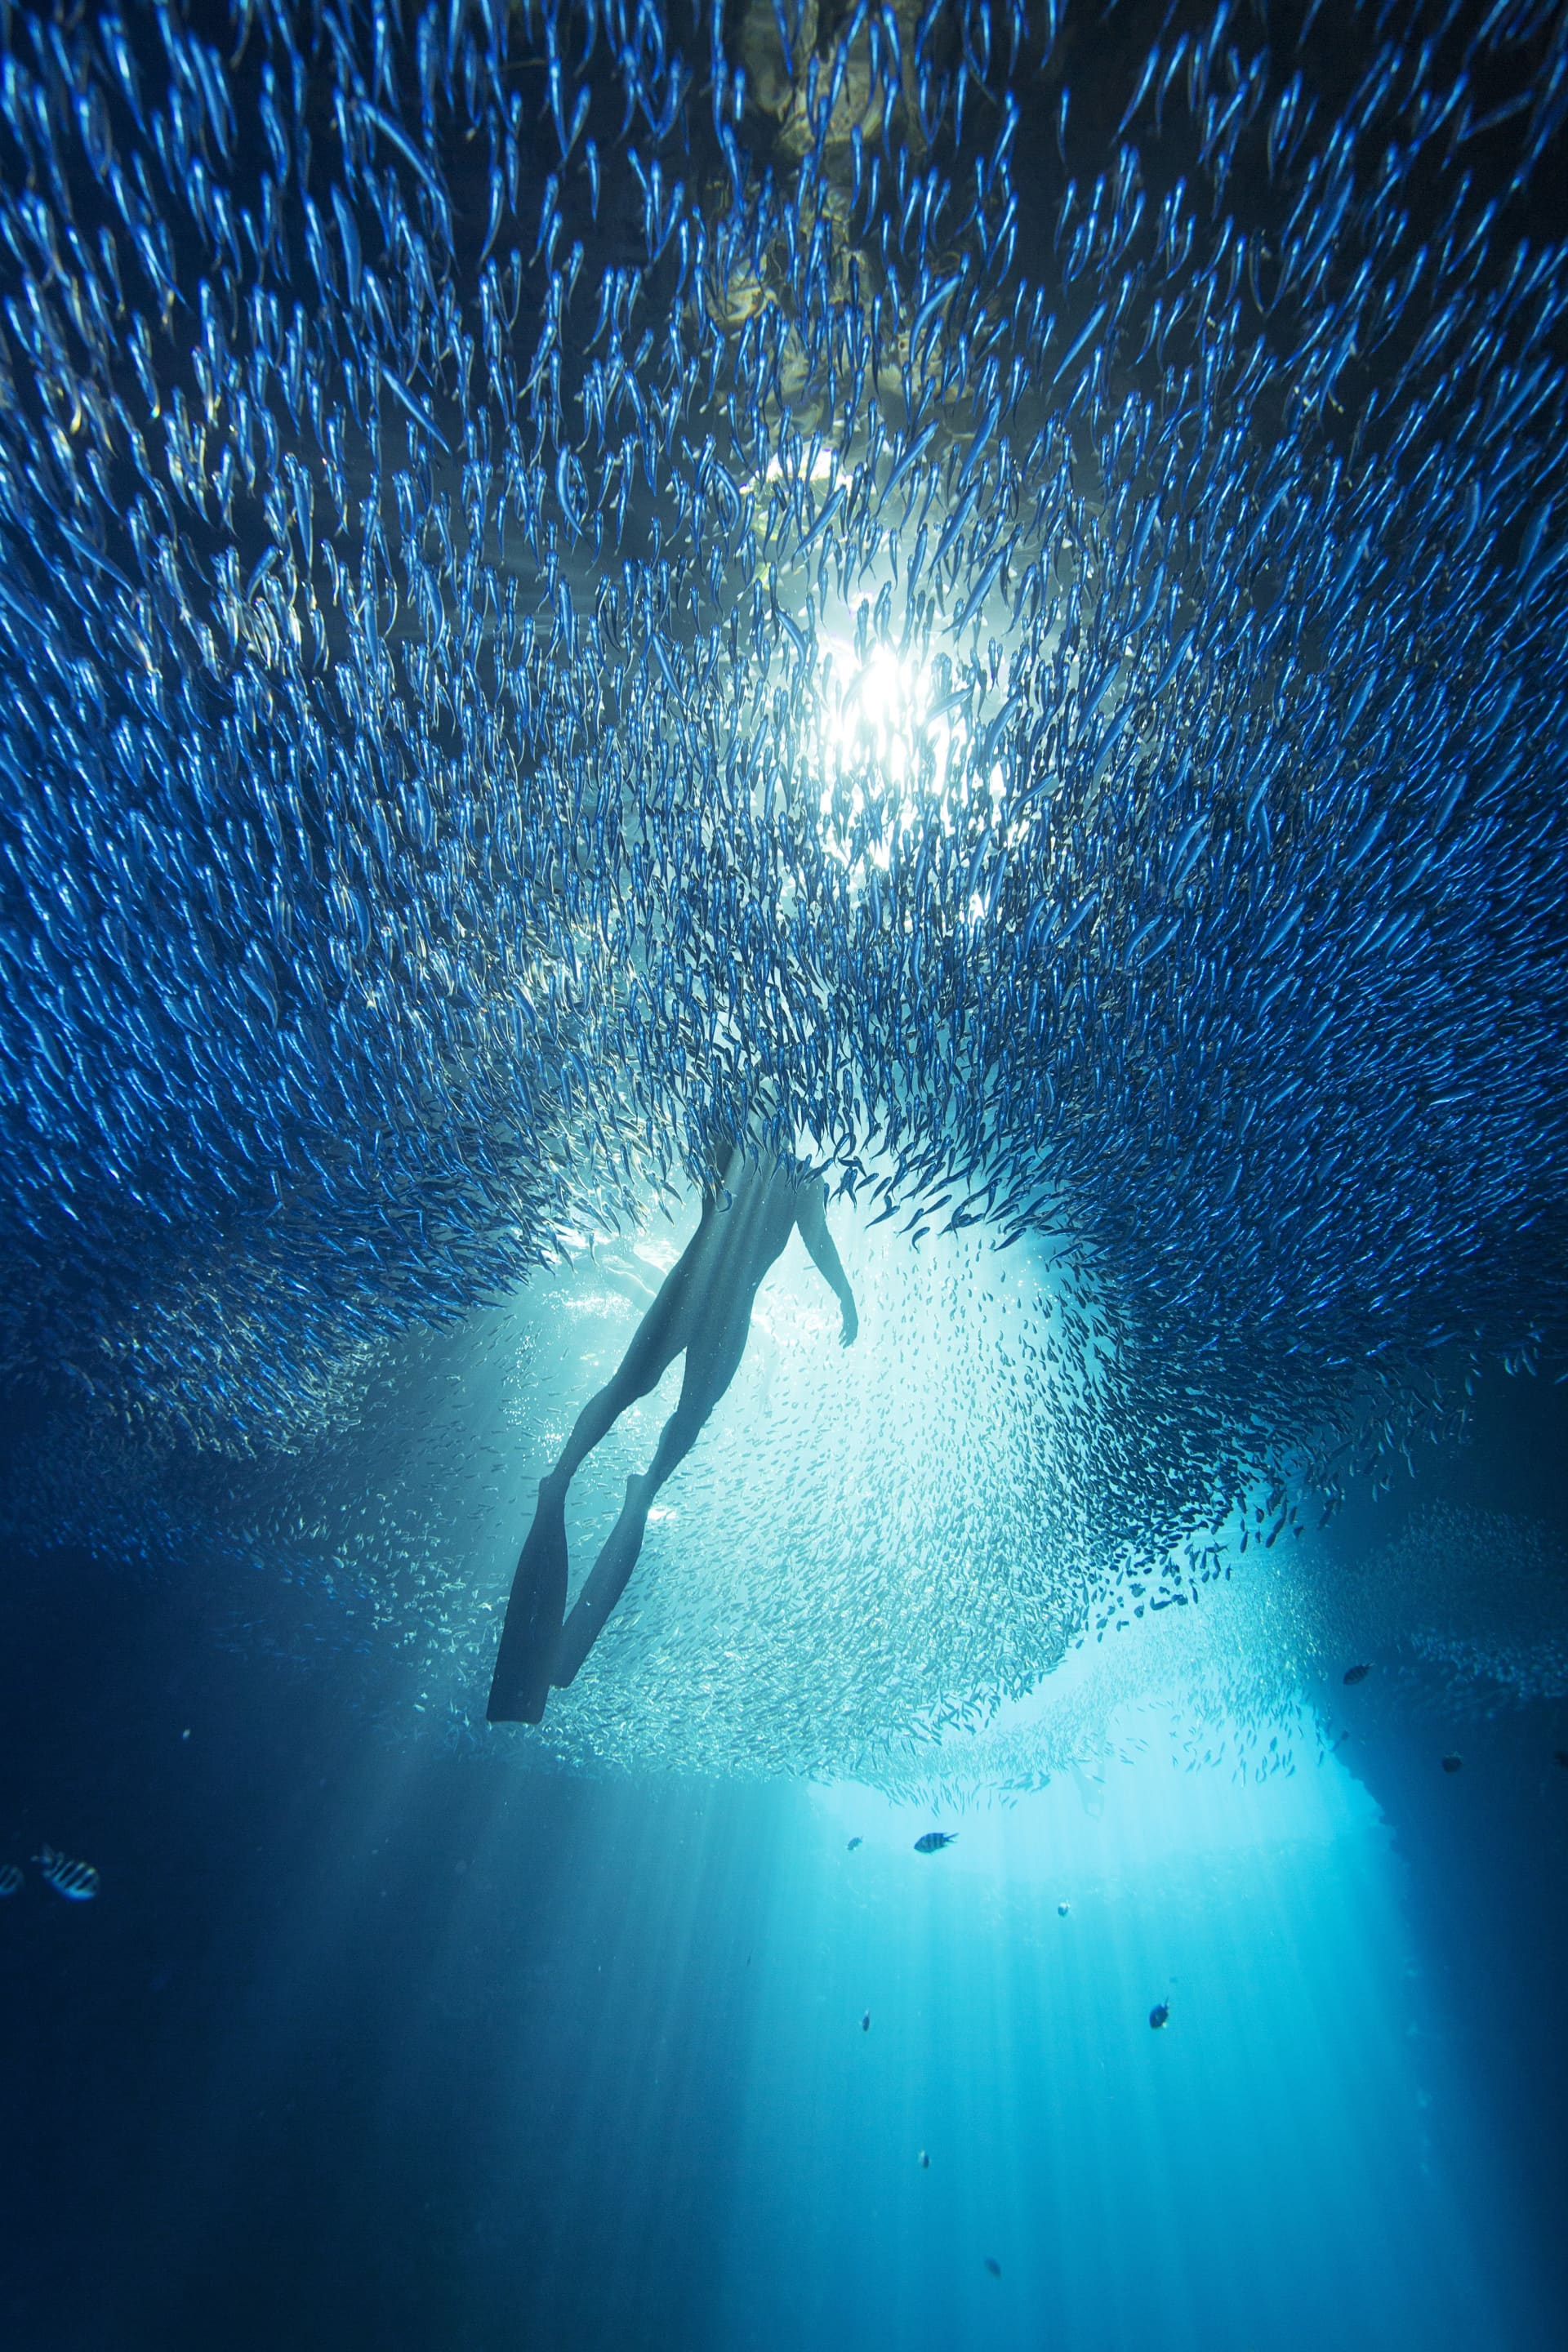 These shots are from a cave called Swallows, I swam using scuba equipment and my whale spotter and swim partner Falanisi Tongiis in the pictures freediving.